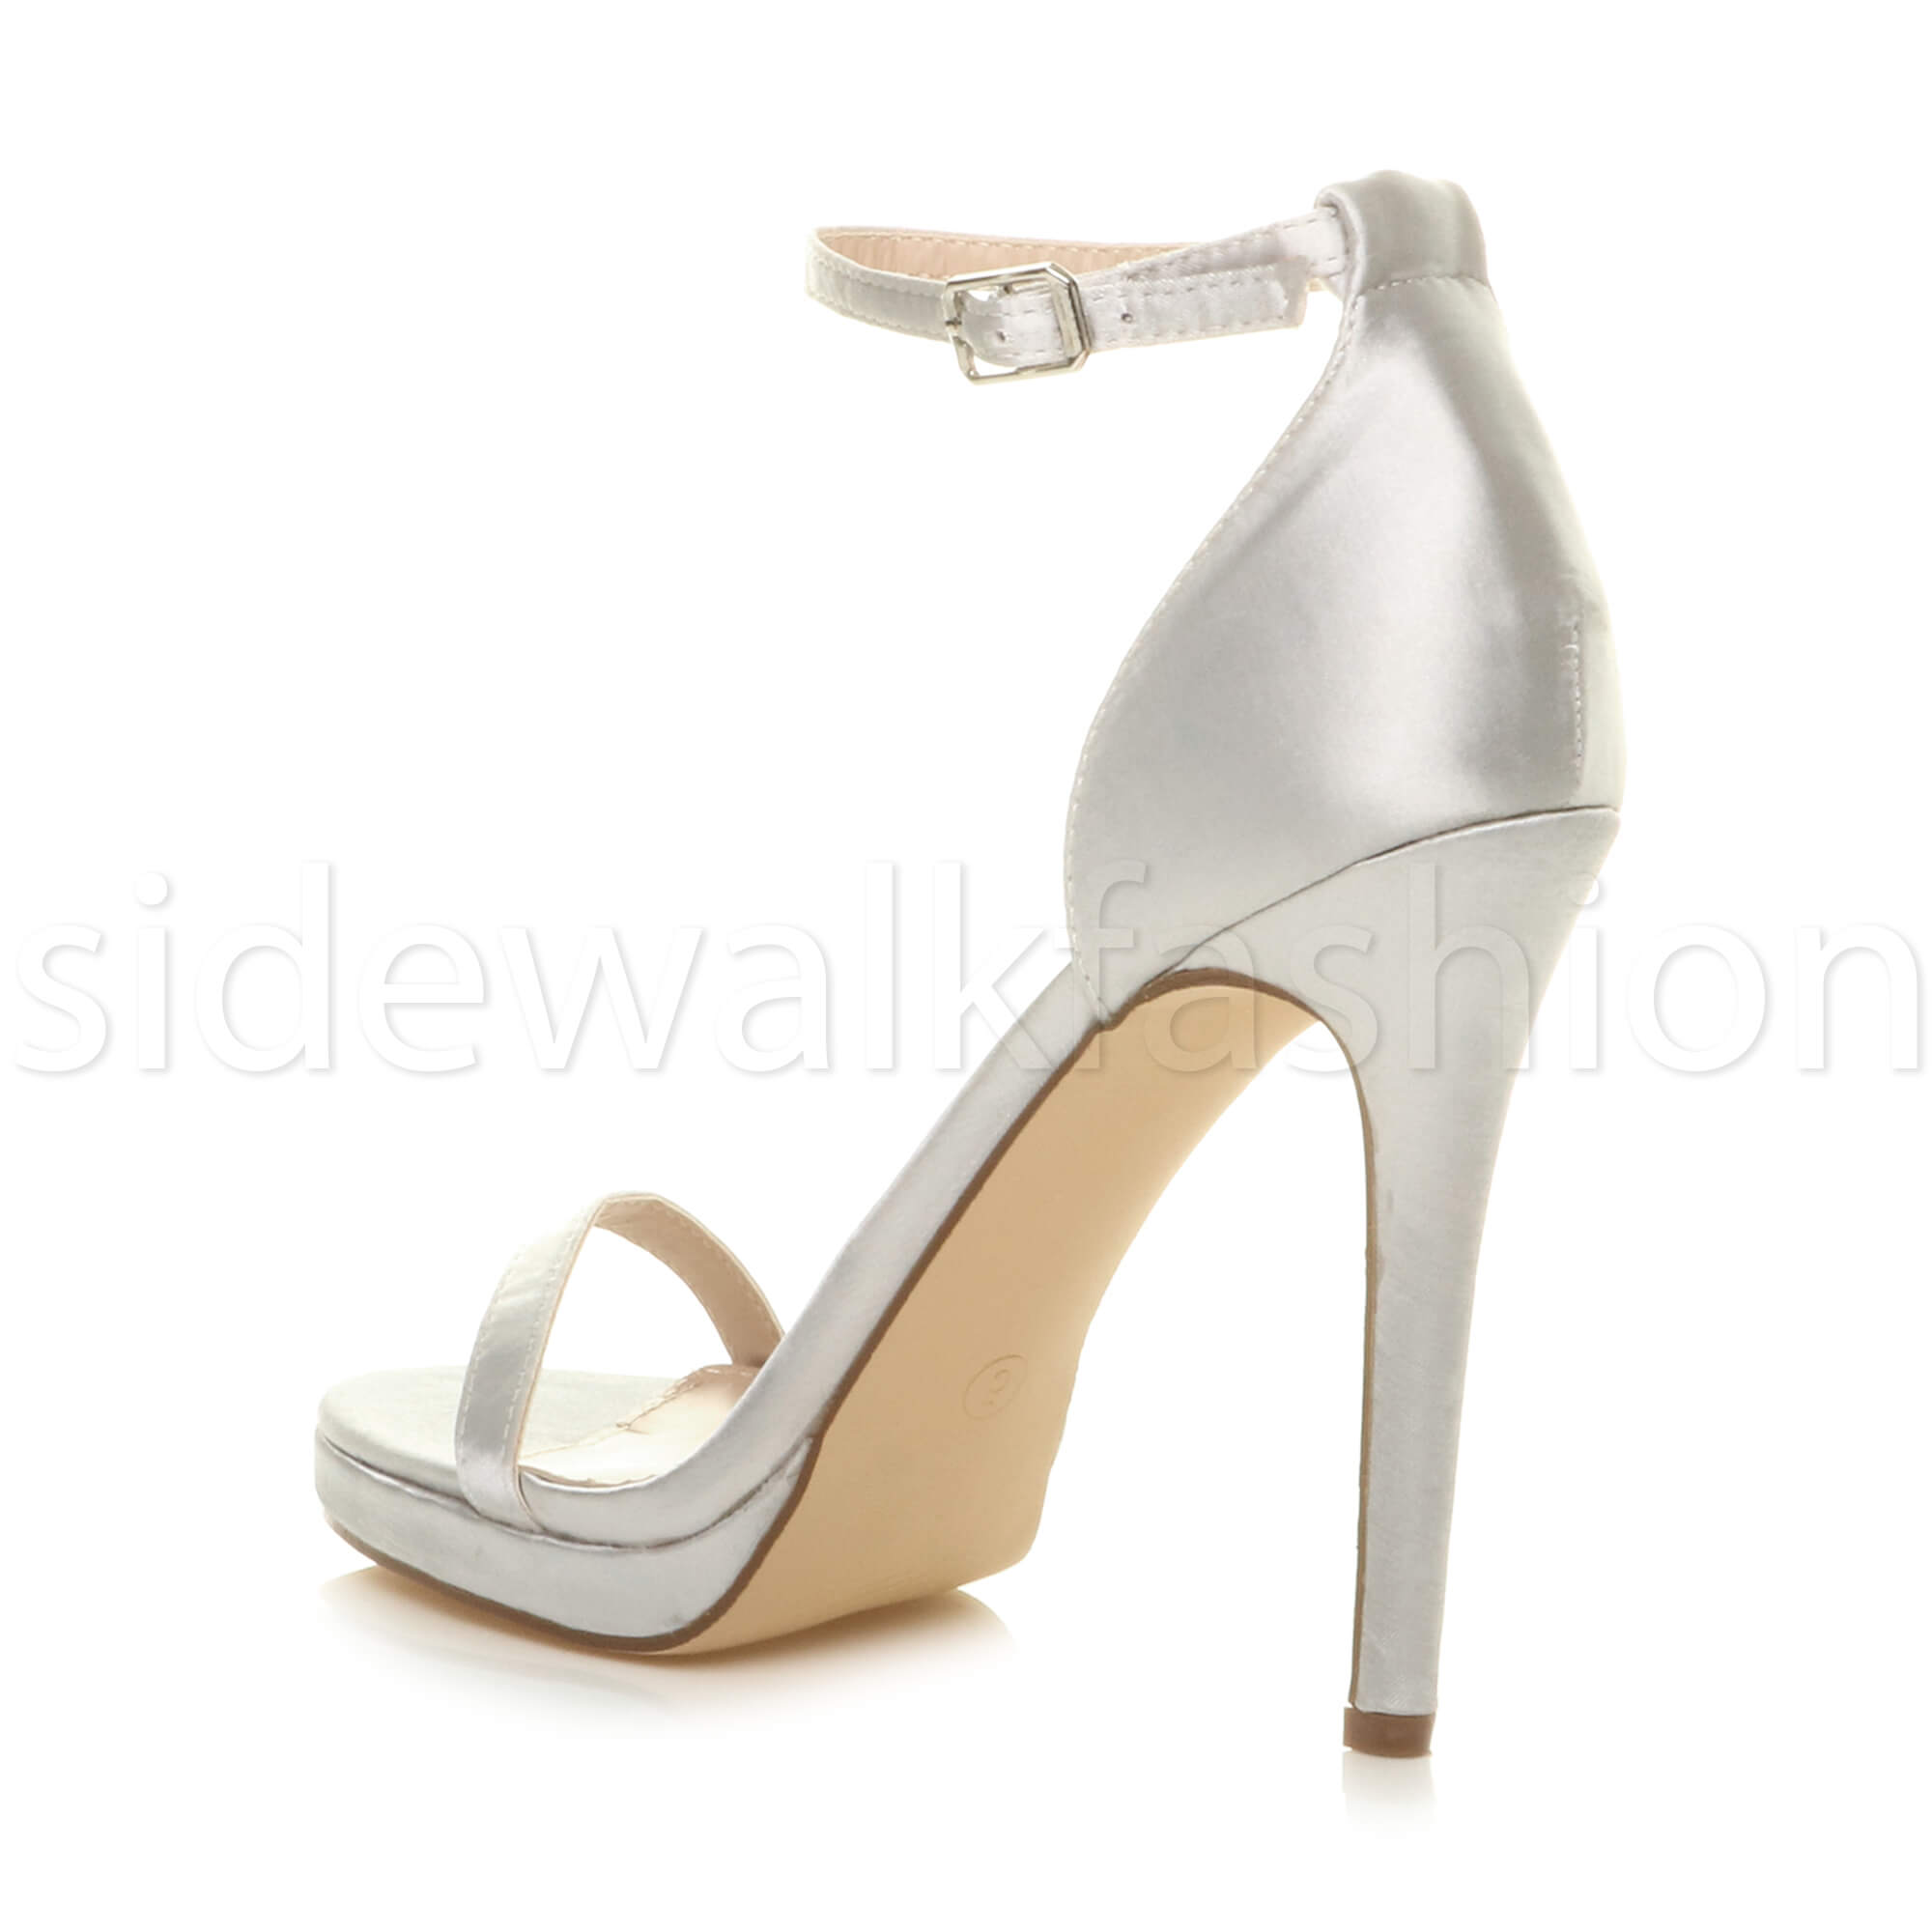 Womens-ladies-high-heel-barely-there-strappy-party-peep-toe-shoes-sandals-size thumbnail 129